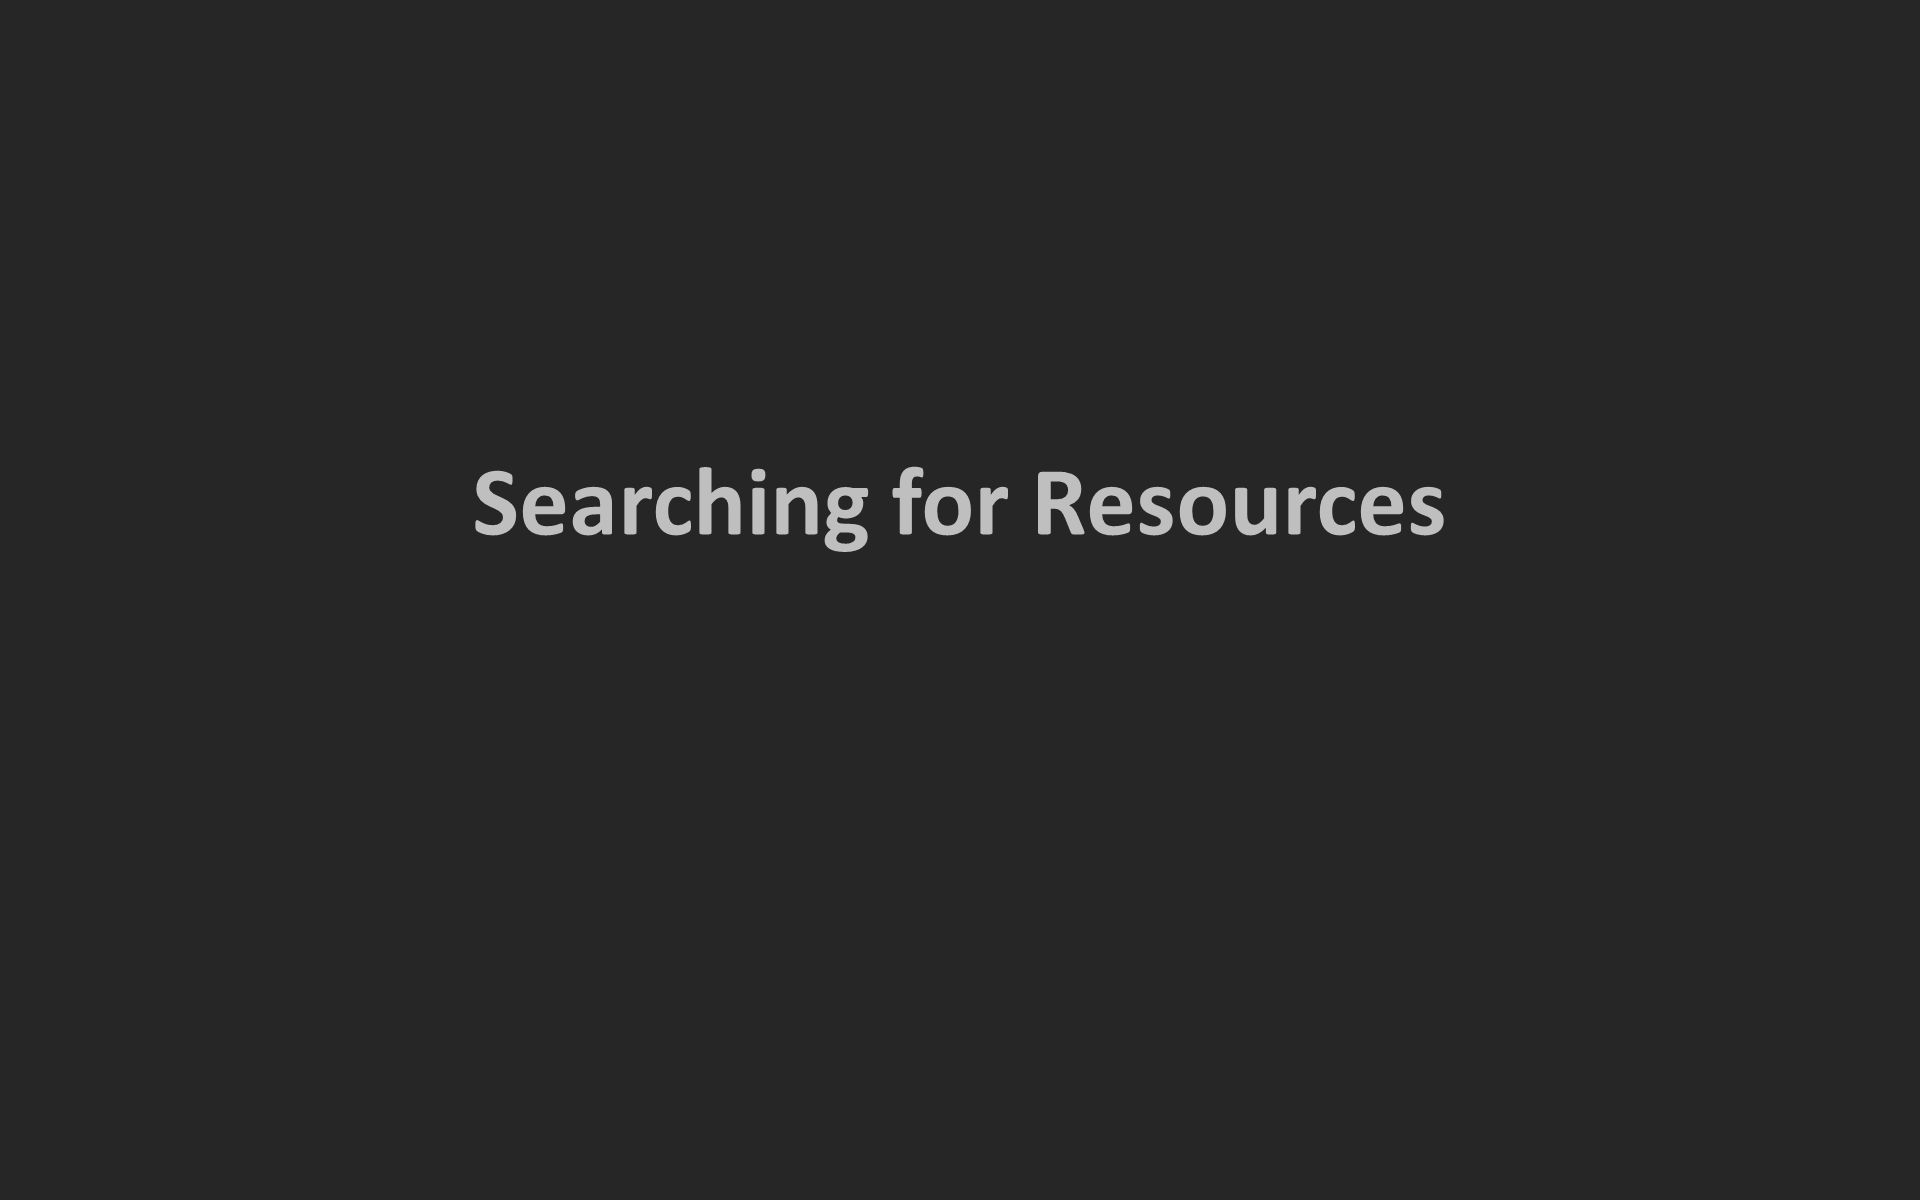 Searching for Resources